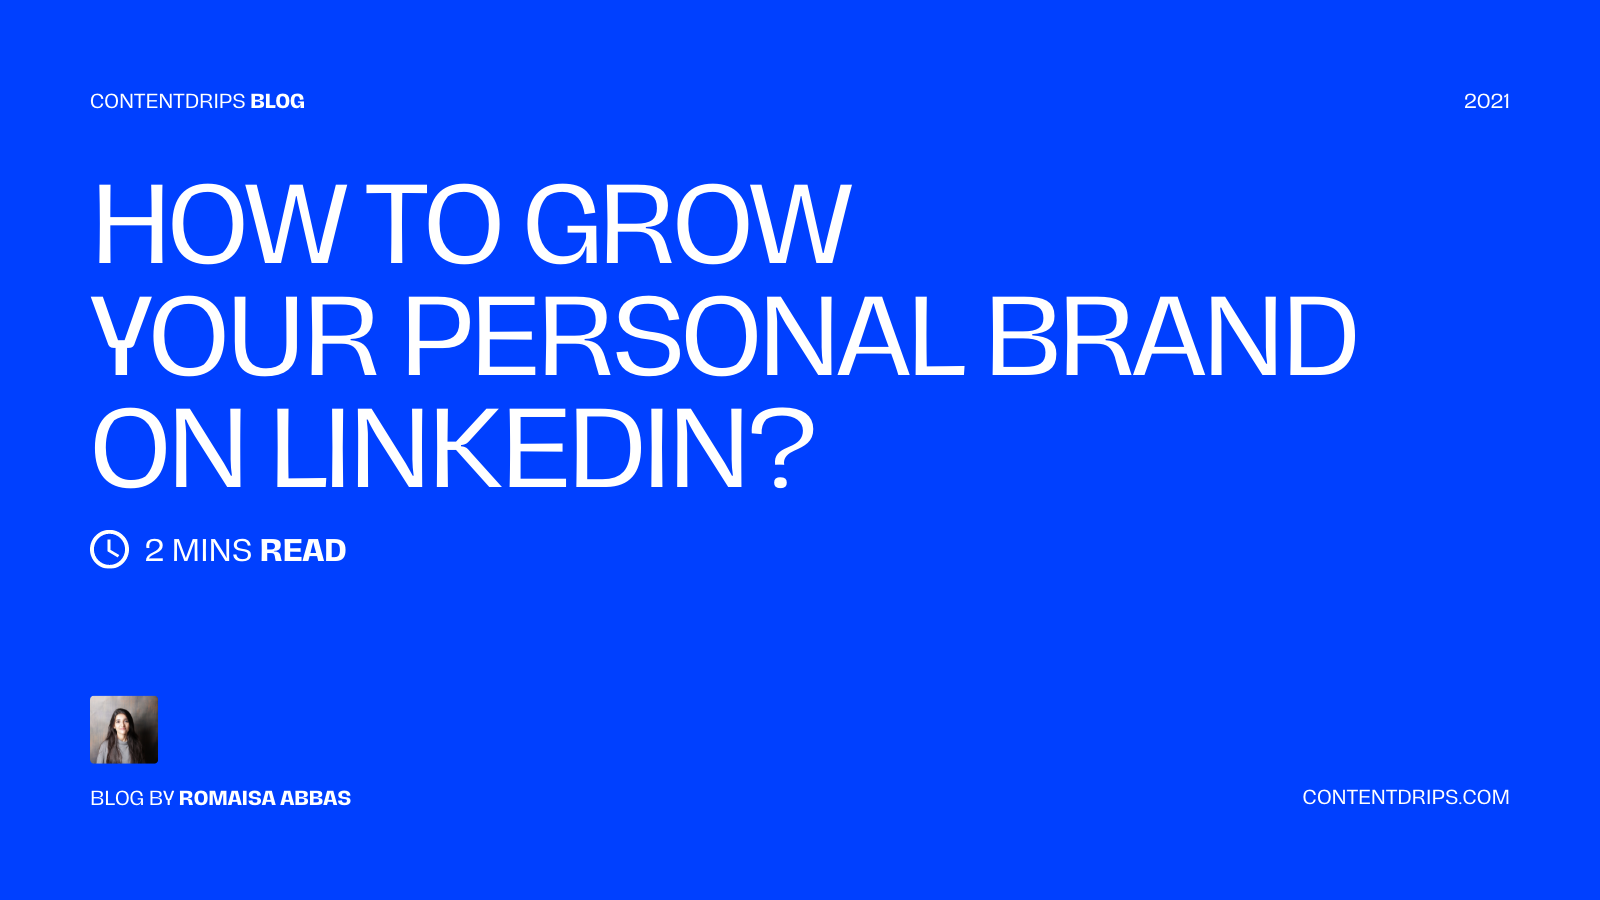 How to Grow Your Personal Brand on LinkedIn?